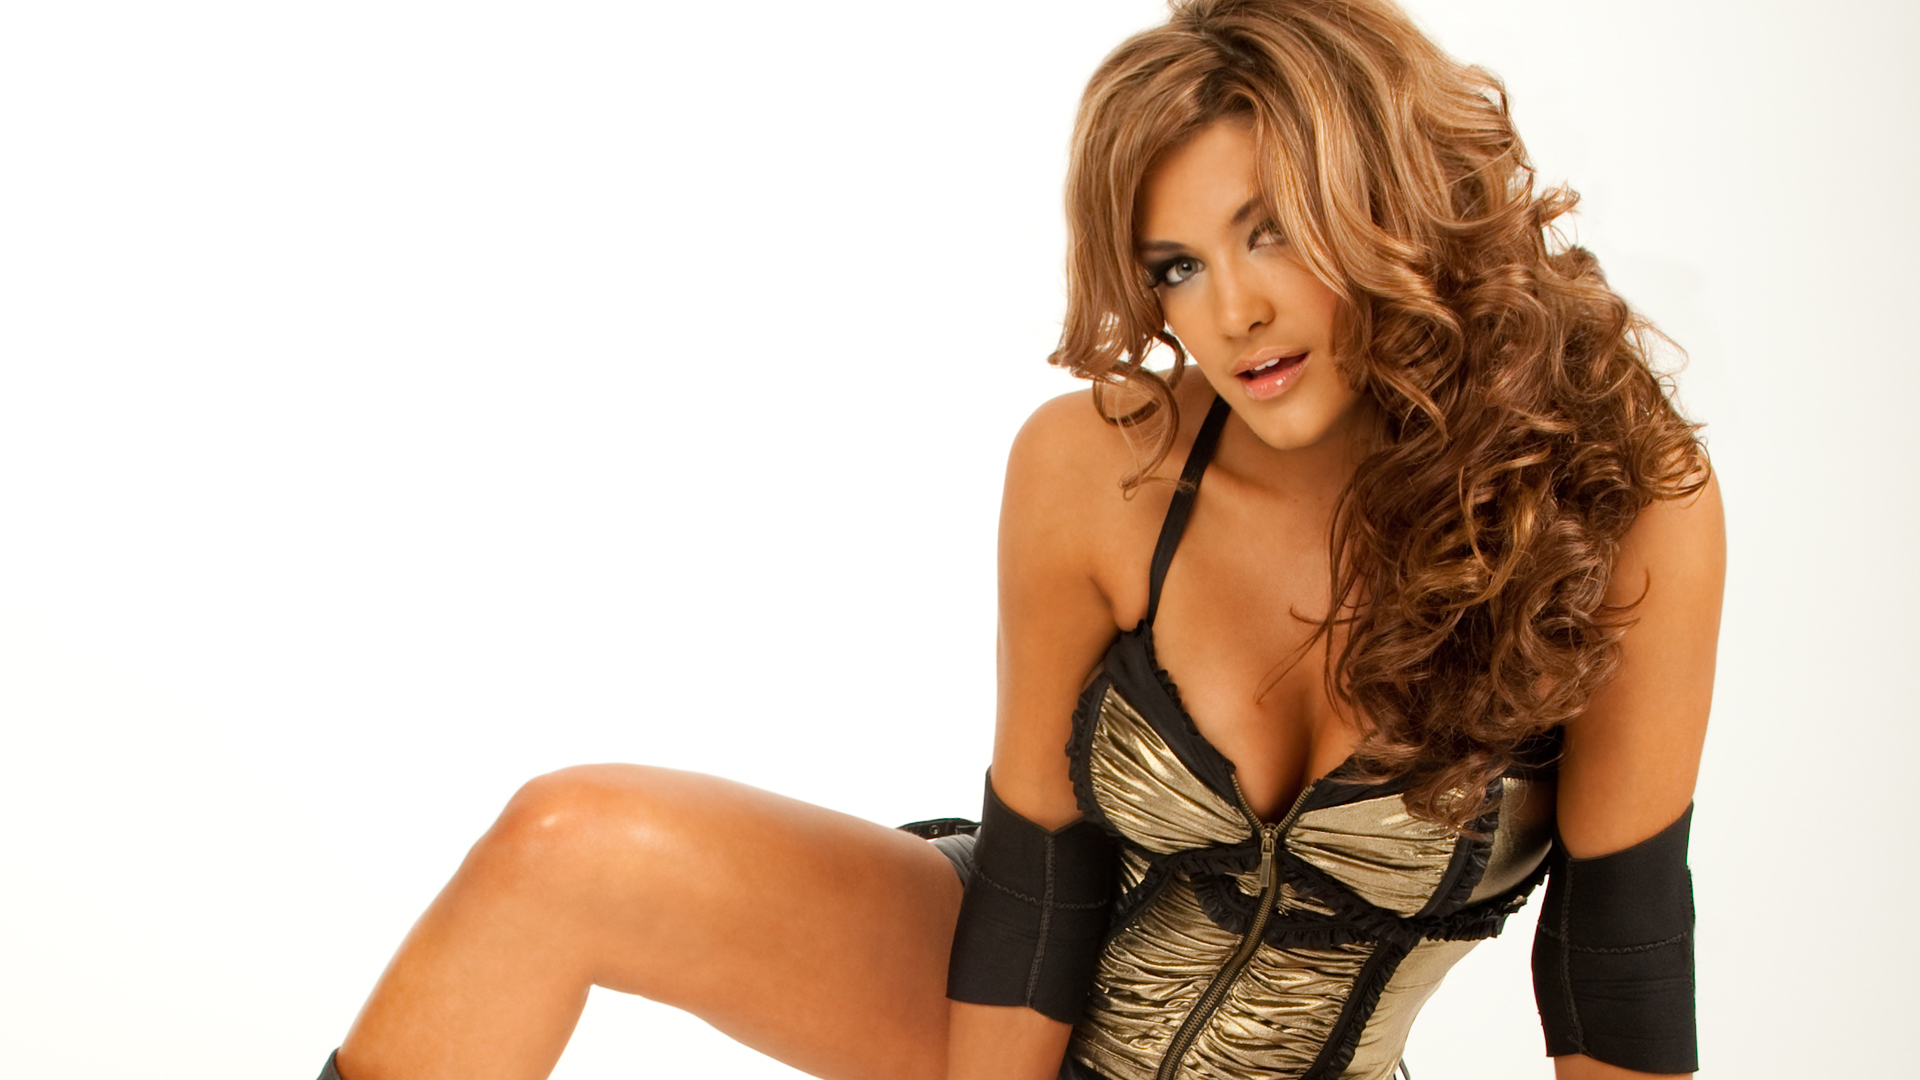 For Eve torres fake naked